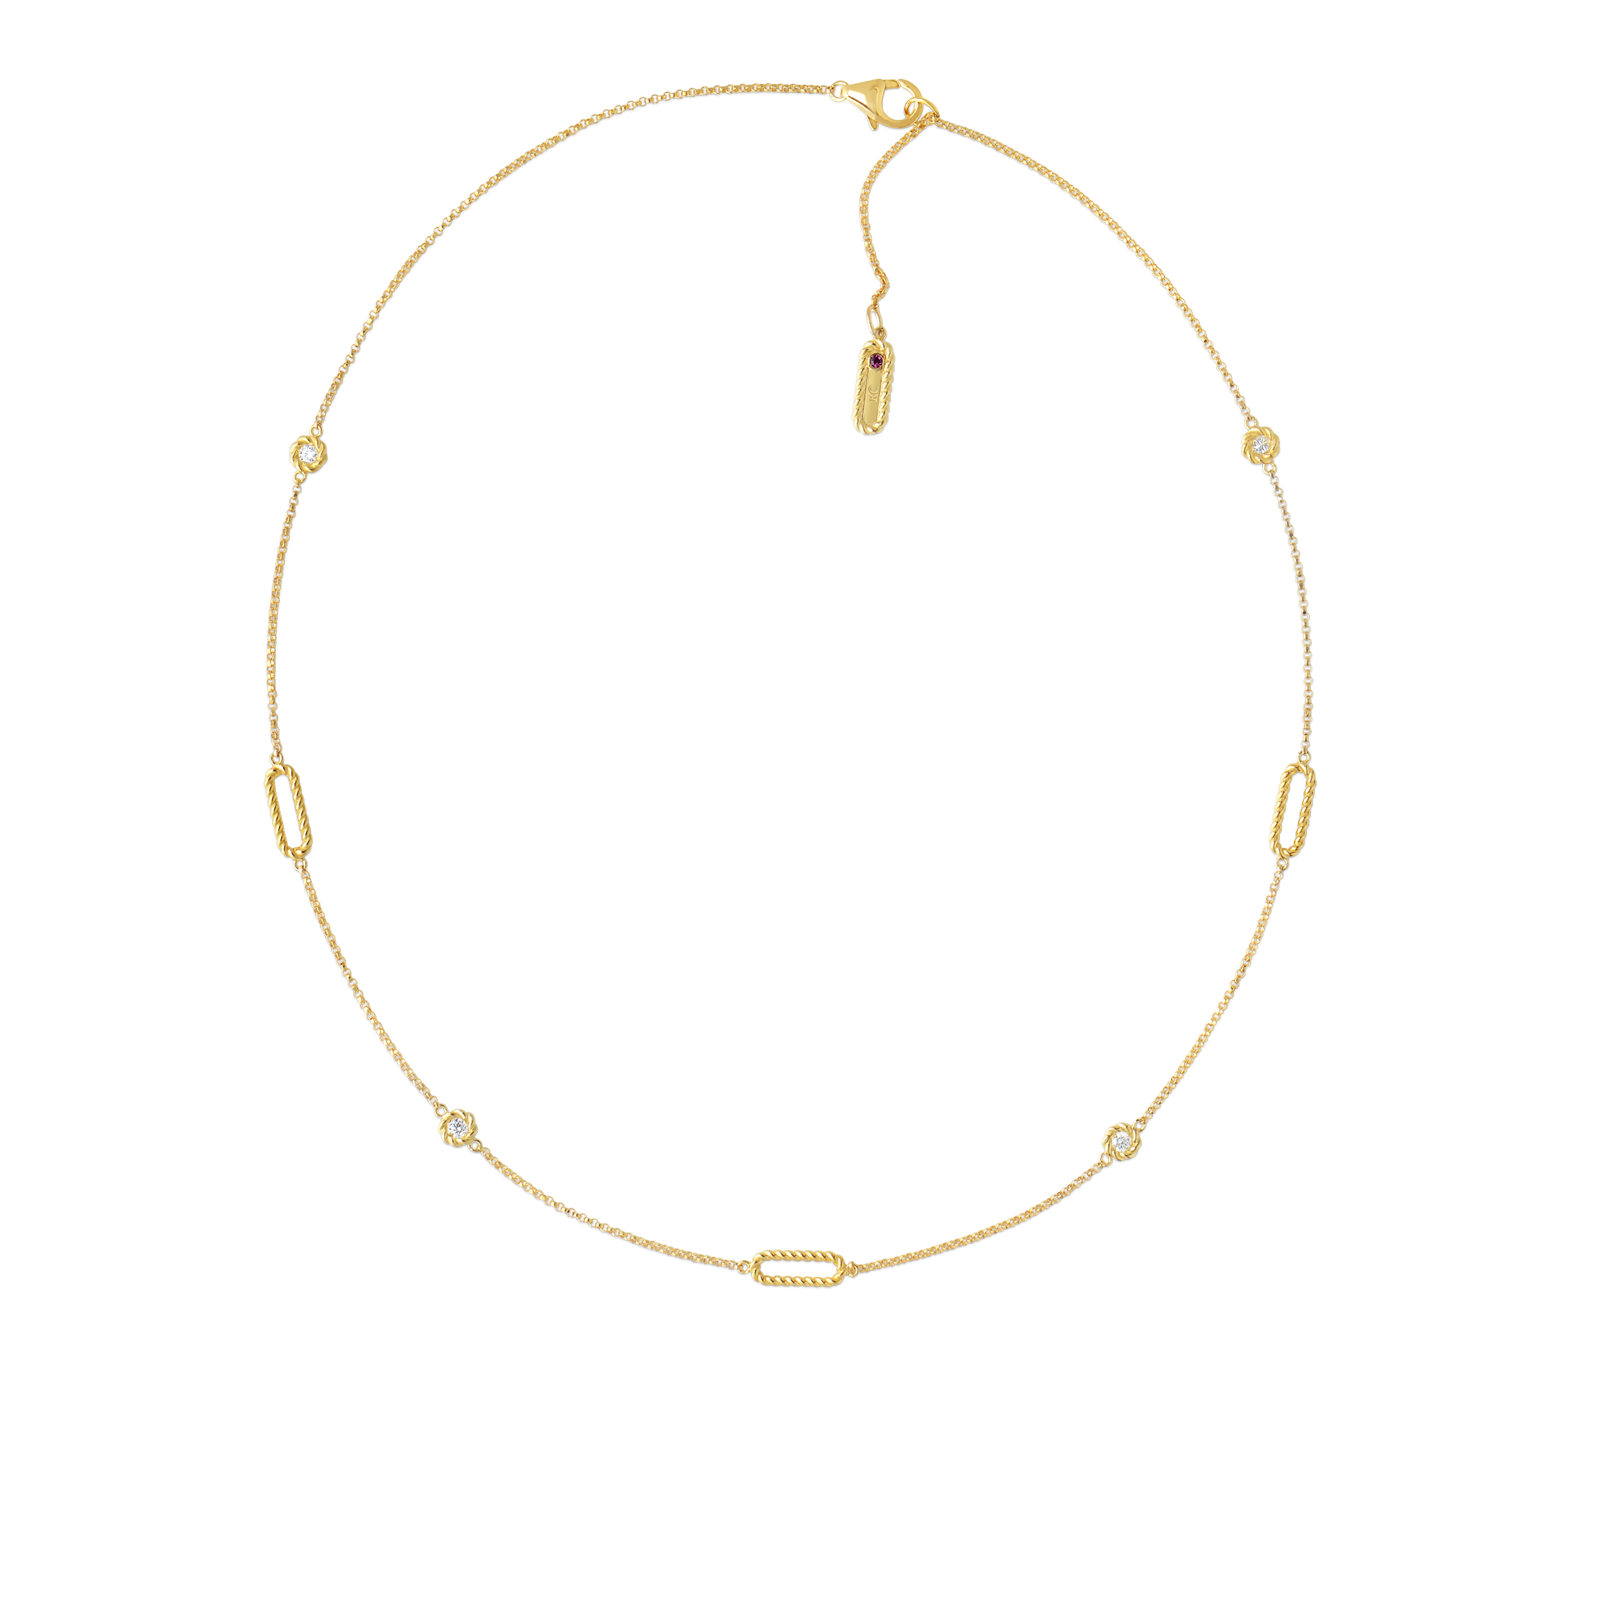 Roberto Coin Barocco 18k Yellow Gold Necklace With Alternating Diamond Stations